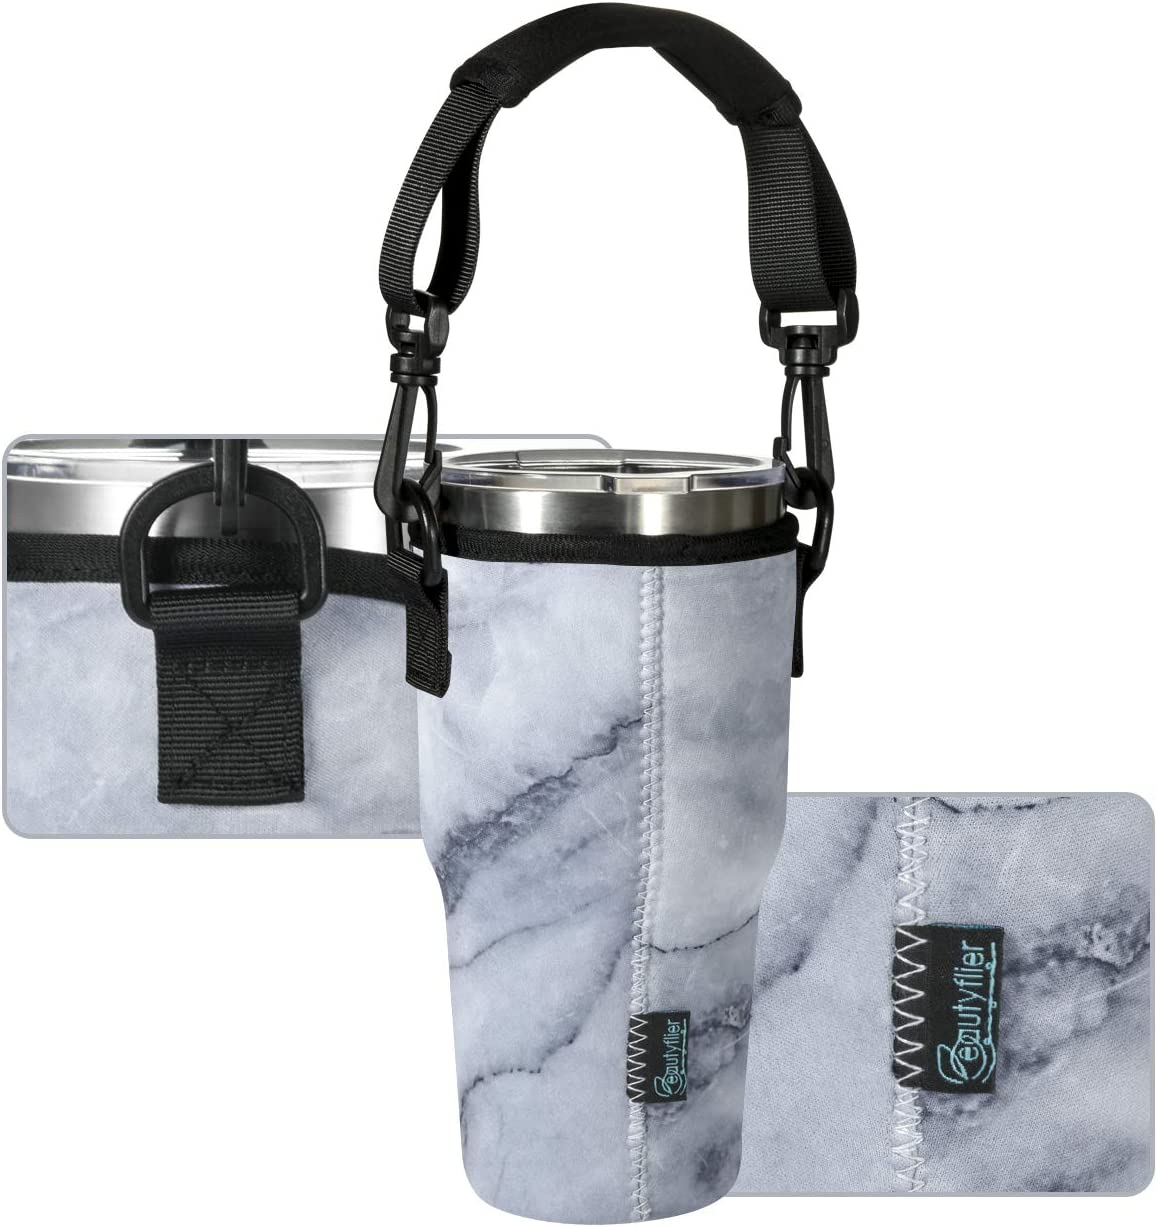 Beautyflier Neoprene Tumbler Carrier Holder Pouch for Stainless Steel Insulate Tumblers with Detachable Carrying Handle Light Blue, Fits for 30 OZ